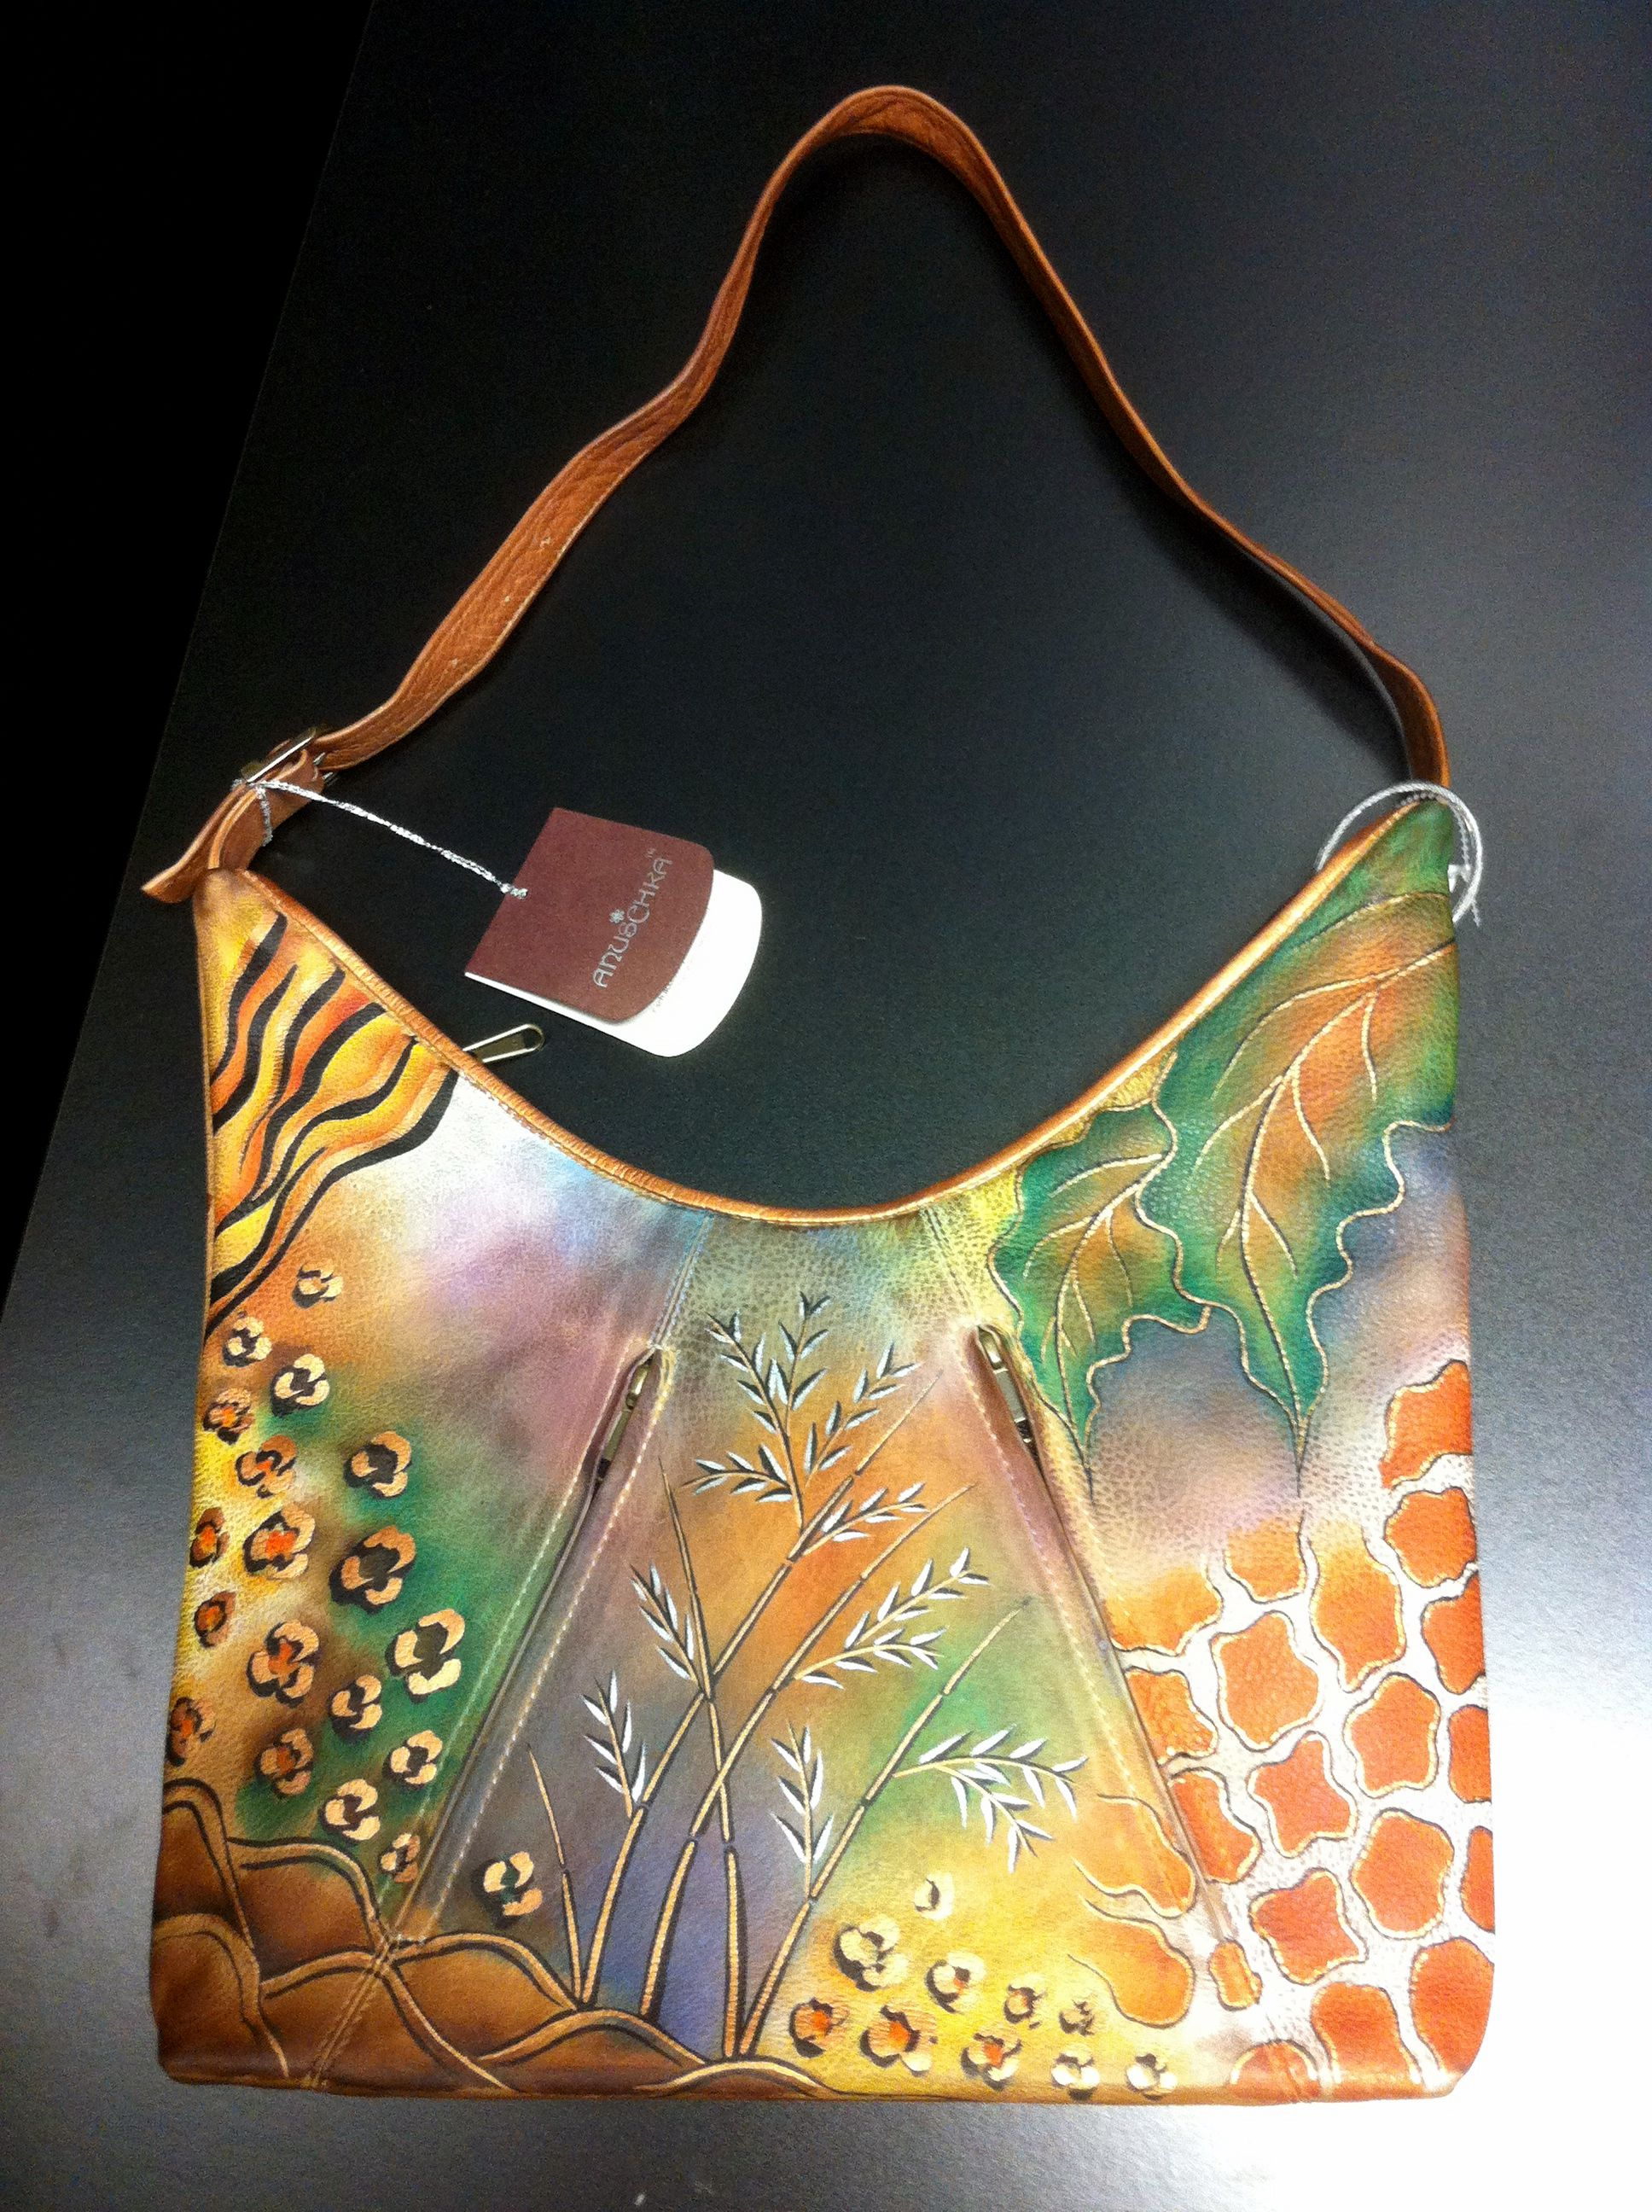 Italian leather bag applique Hand painted purse leather Hand painted leather bag Monet Blue green leather handbag women Leather tote bag